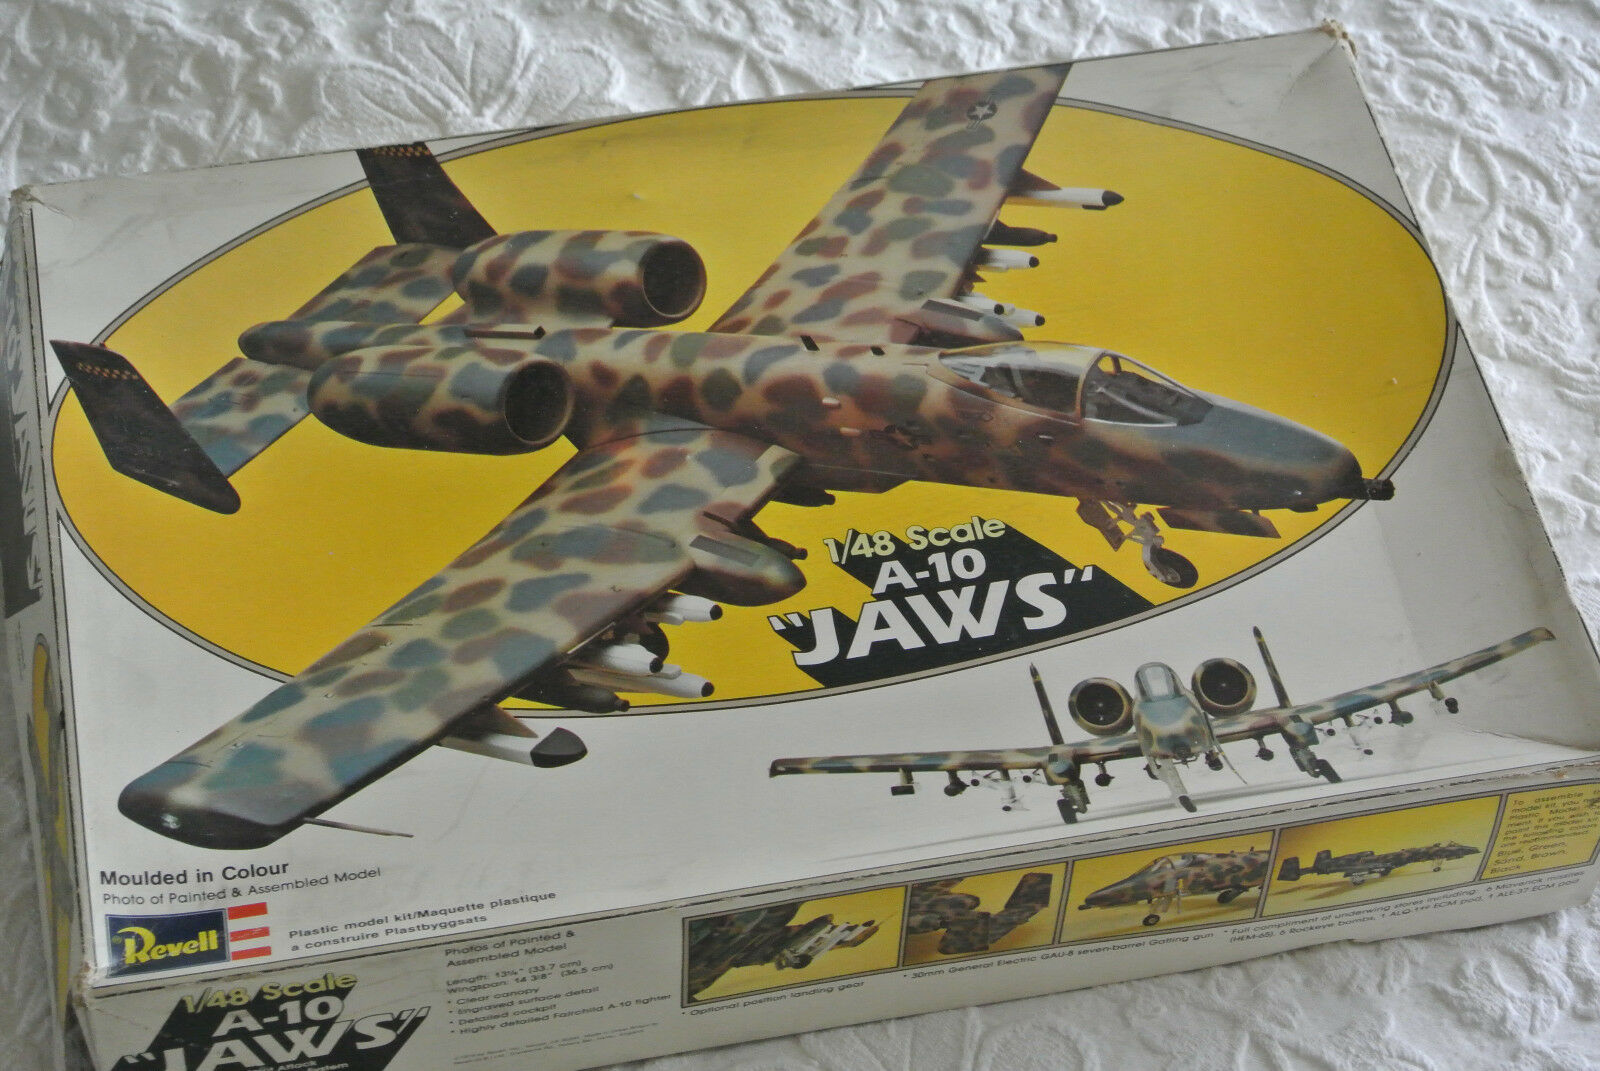 Revell 1 48 scale model kit -  A-10  JAWS